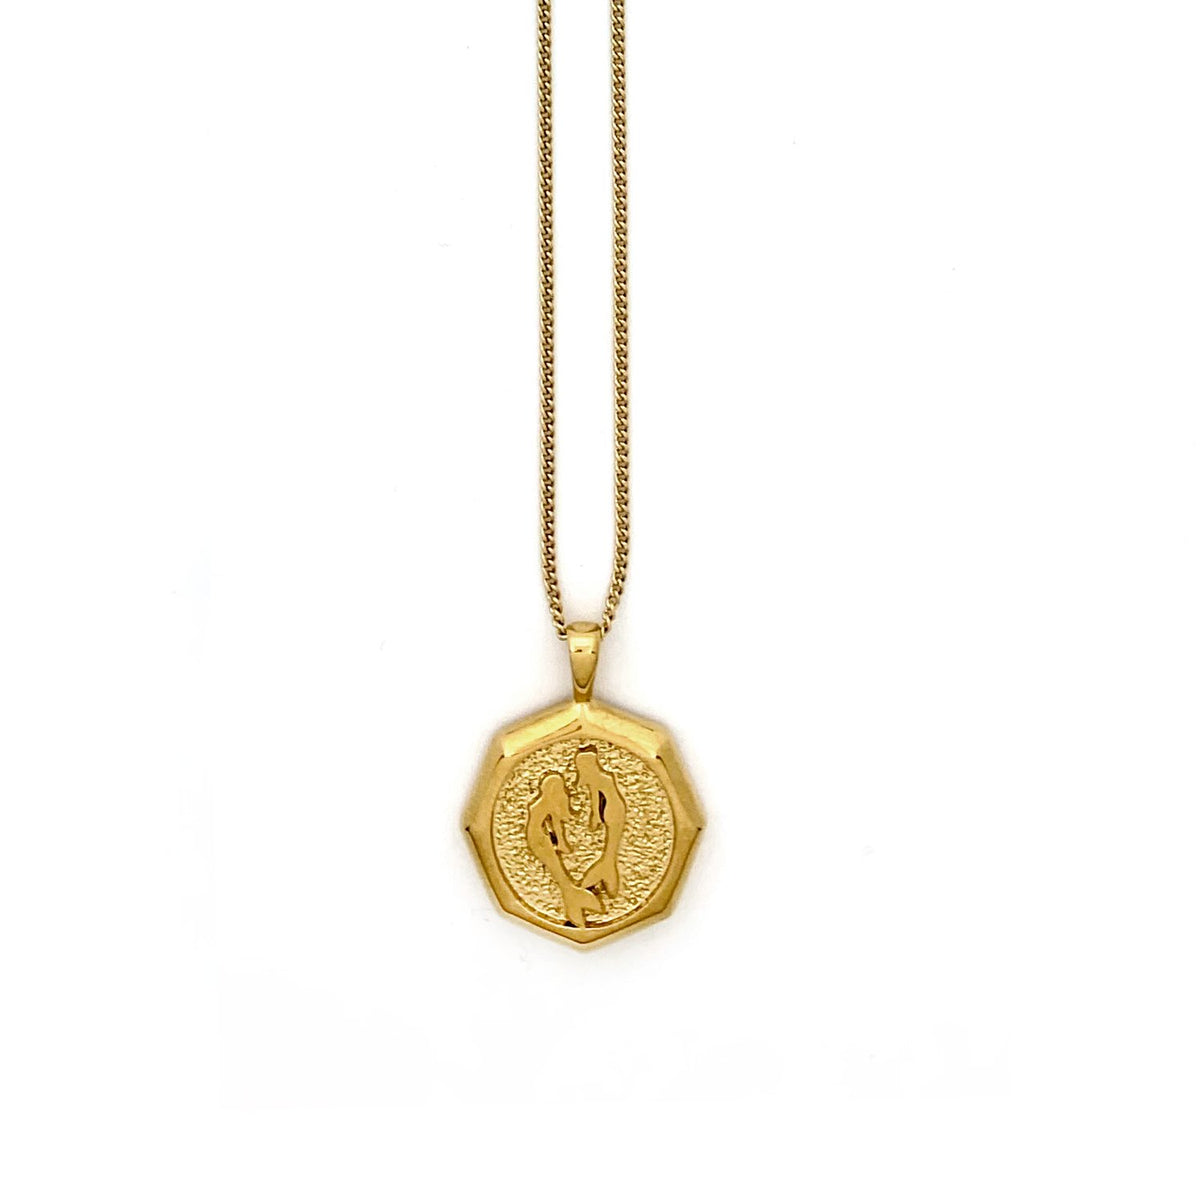 A close-up of a gold pendant necklace in an octagon shape with two mermaids